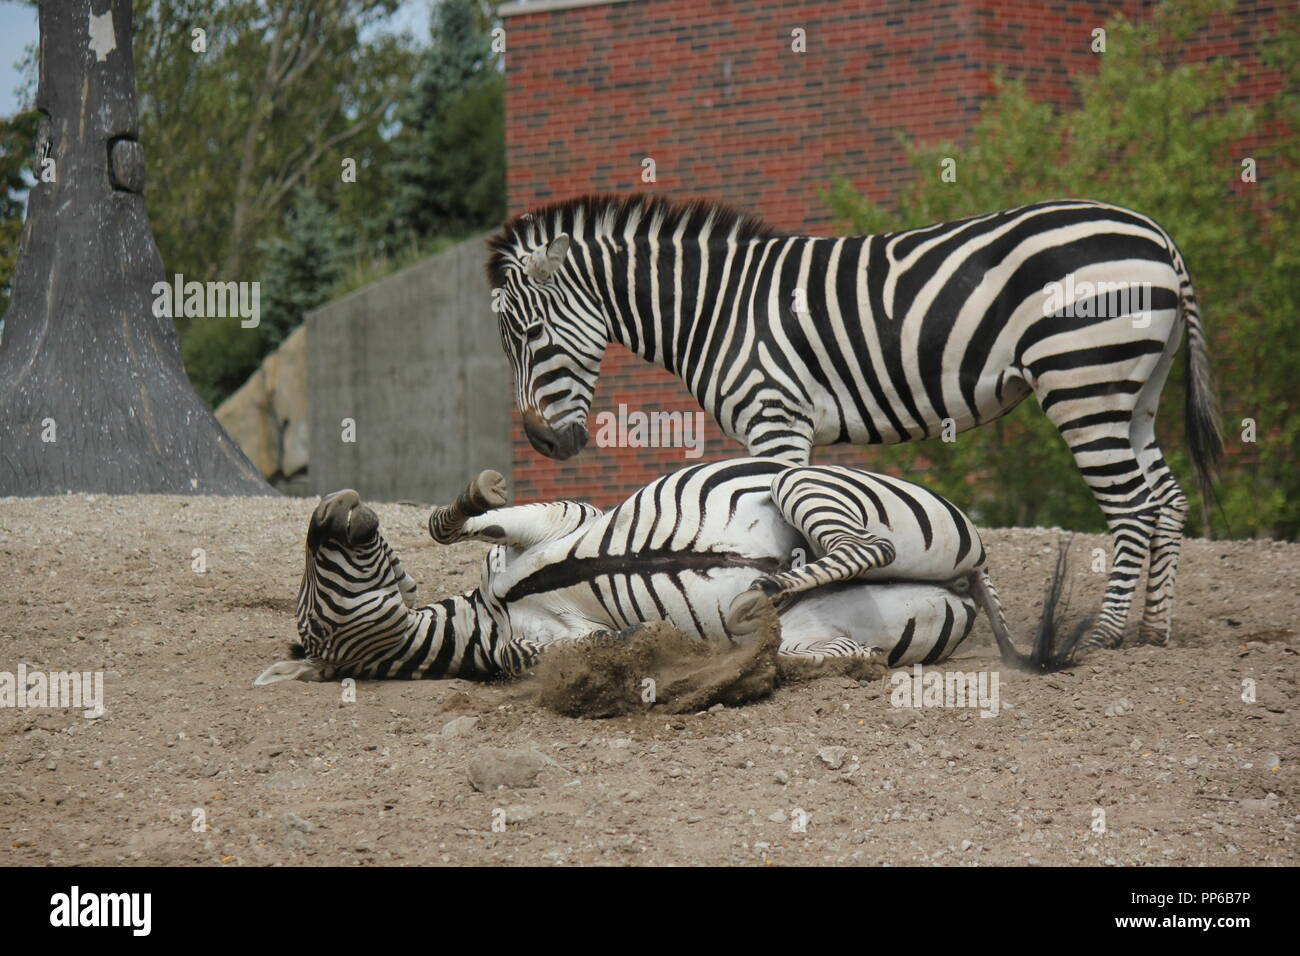 Lincoln Park Zoo's pair of adult zebras romping and rolling around their area. - Stock Image